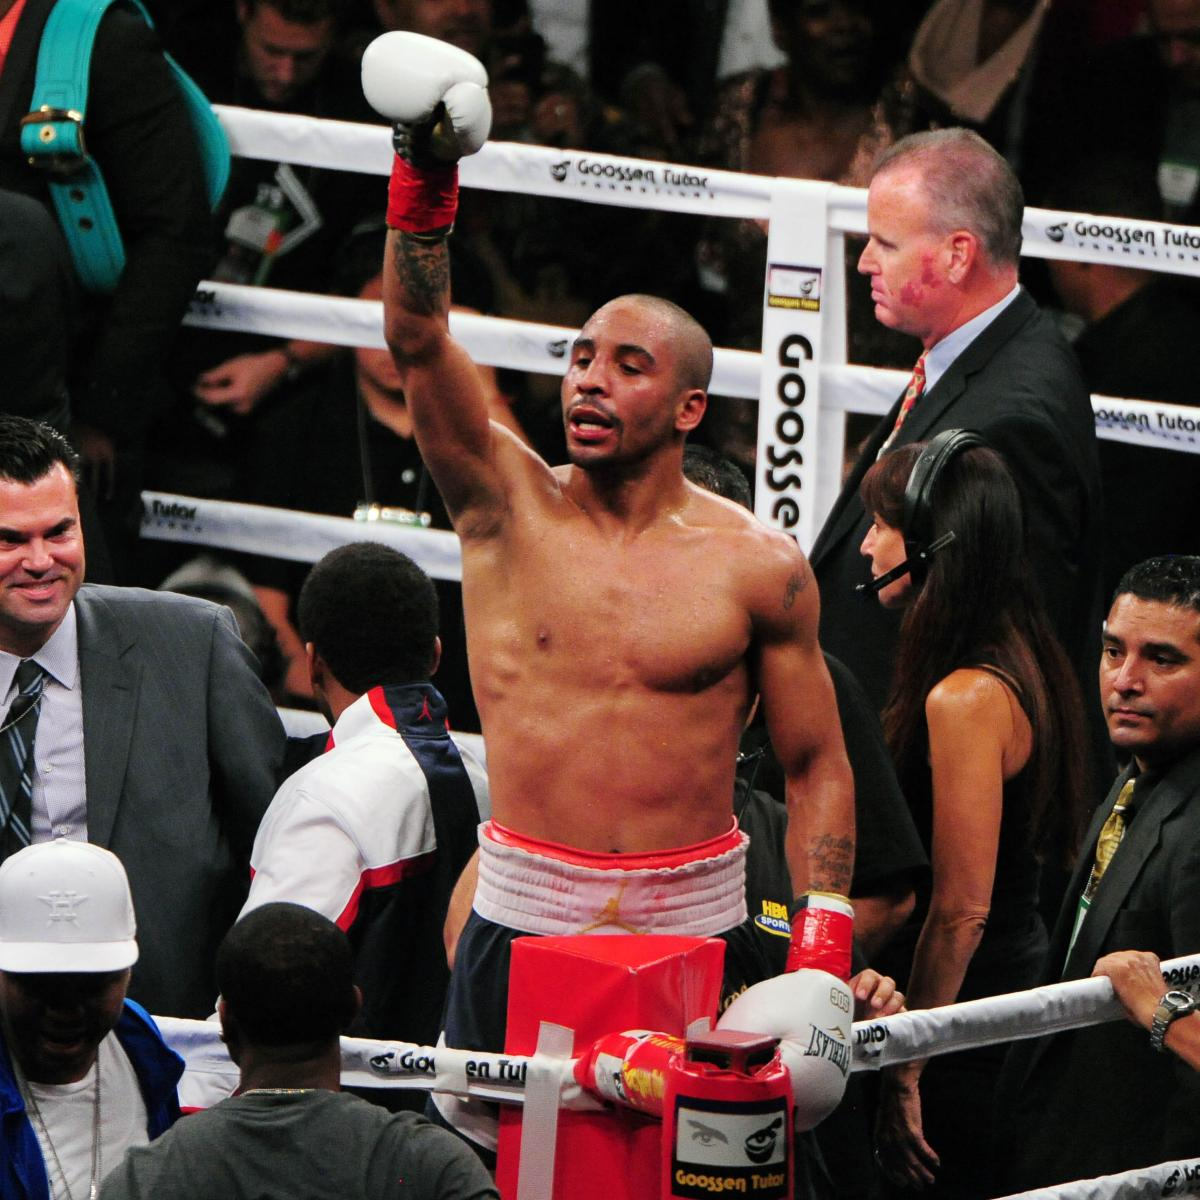 Ward vs rodriguez results winner scorecard and analysis ward vs rodriguez results winner scorecard and analysis bleacher report latest news videos and highlights malvernweather Gallery